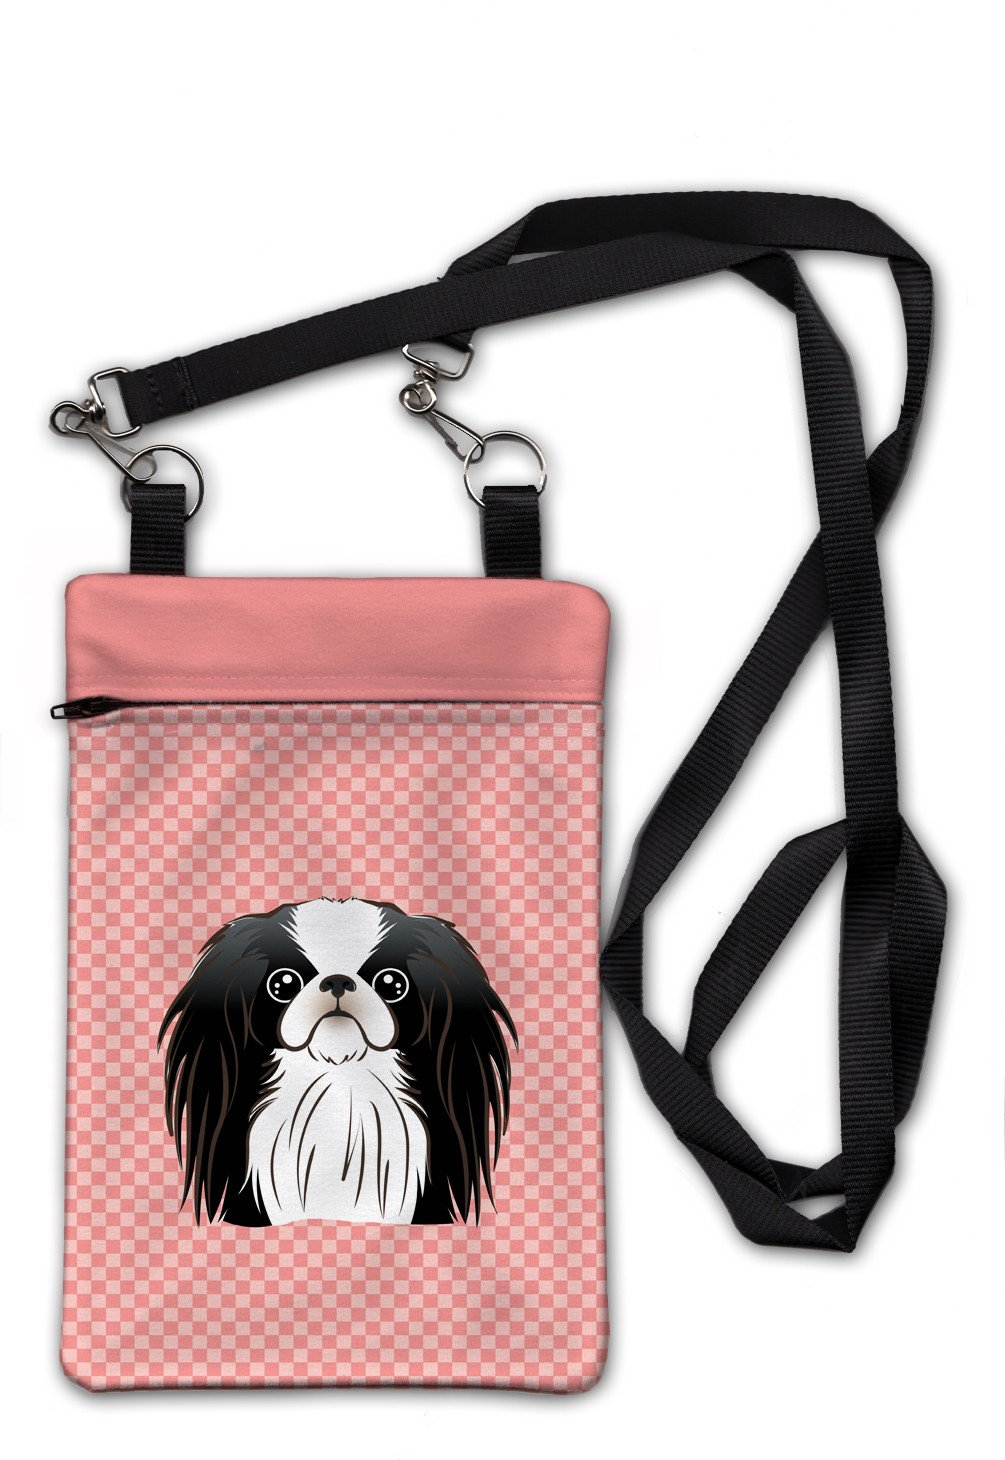 Checkerboard Pink Japanese Chin Crossbody Bag Purse BB1230OBDY by Caroline's Treasures